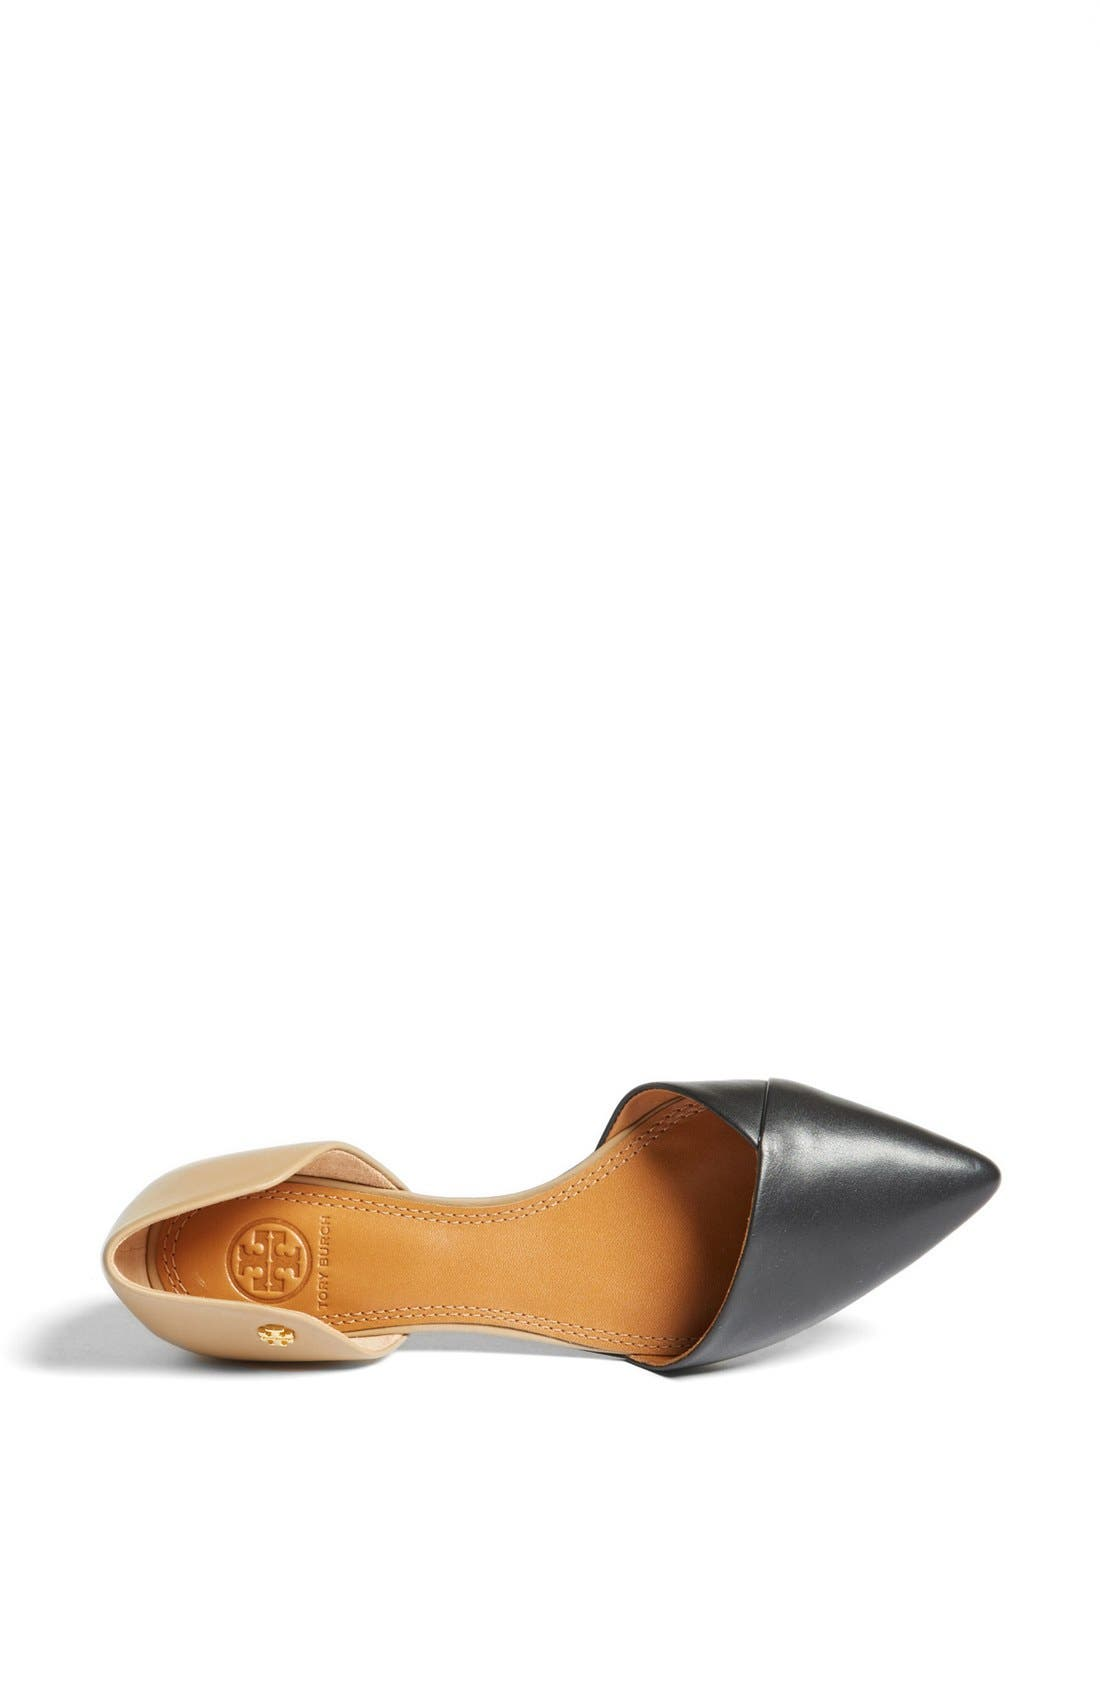 TORY BURCH,                             Leather Flat,                             Alternate thumbnail 4, color,                             008